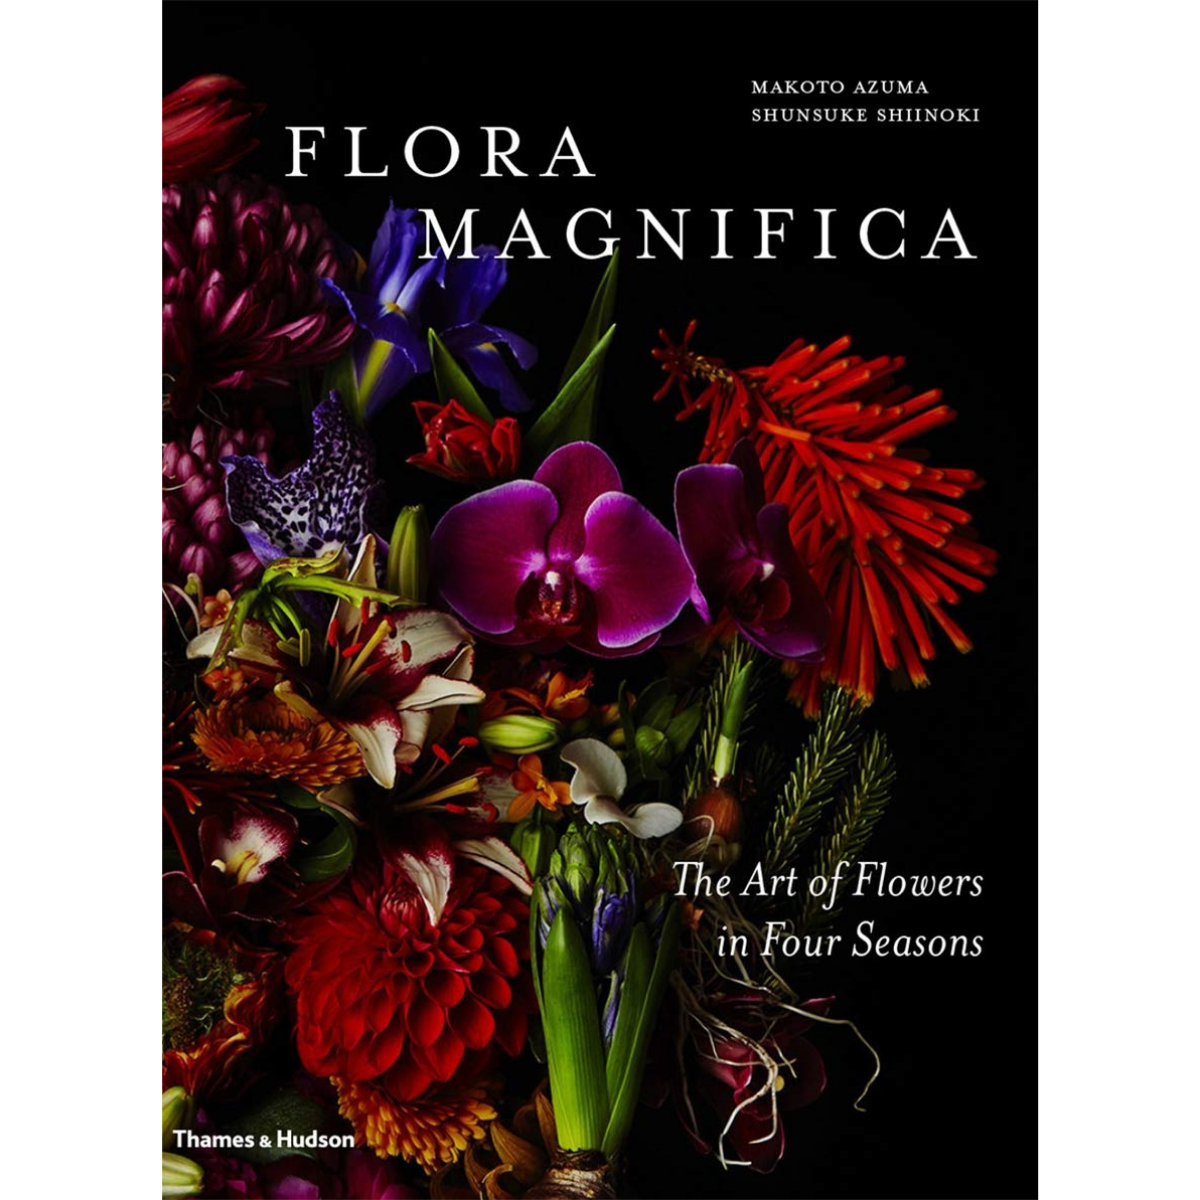 LIVRO FLORA MAGNIFICA - THE ART OF FLOWERS IN FOUR SEASONS